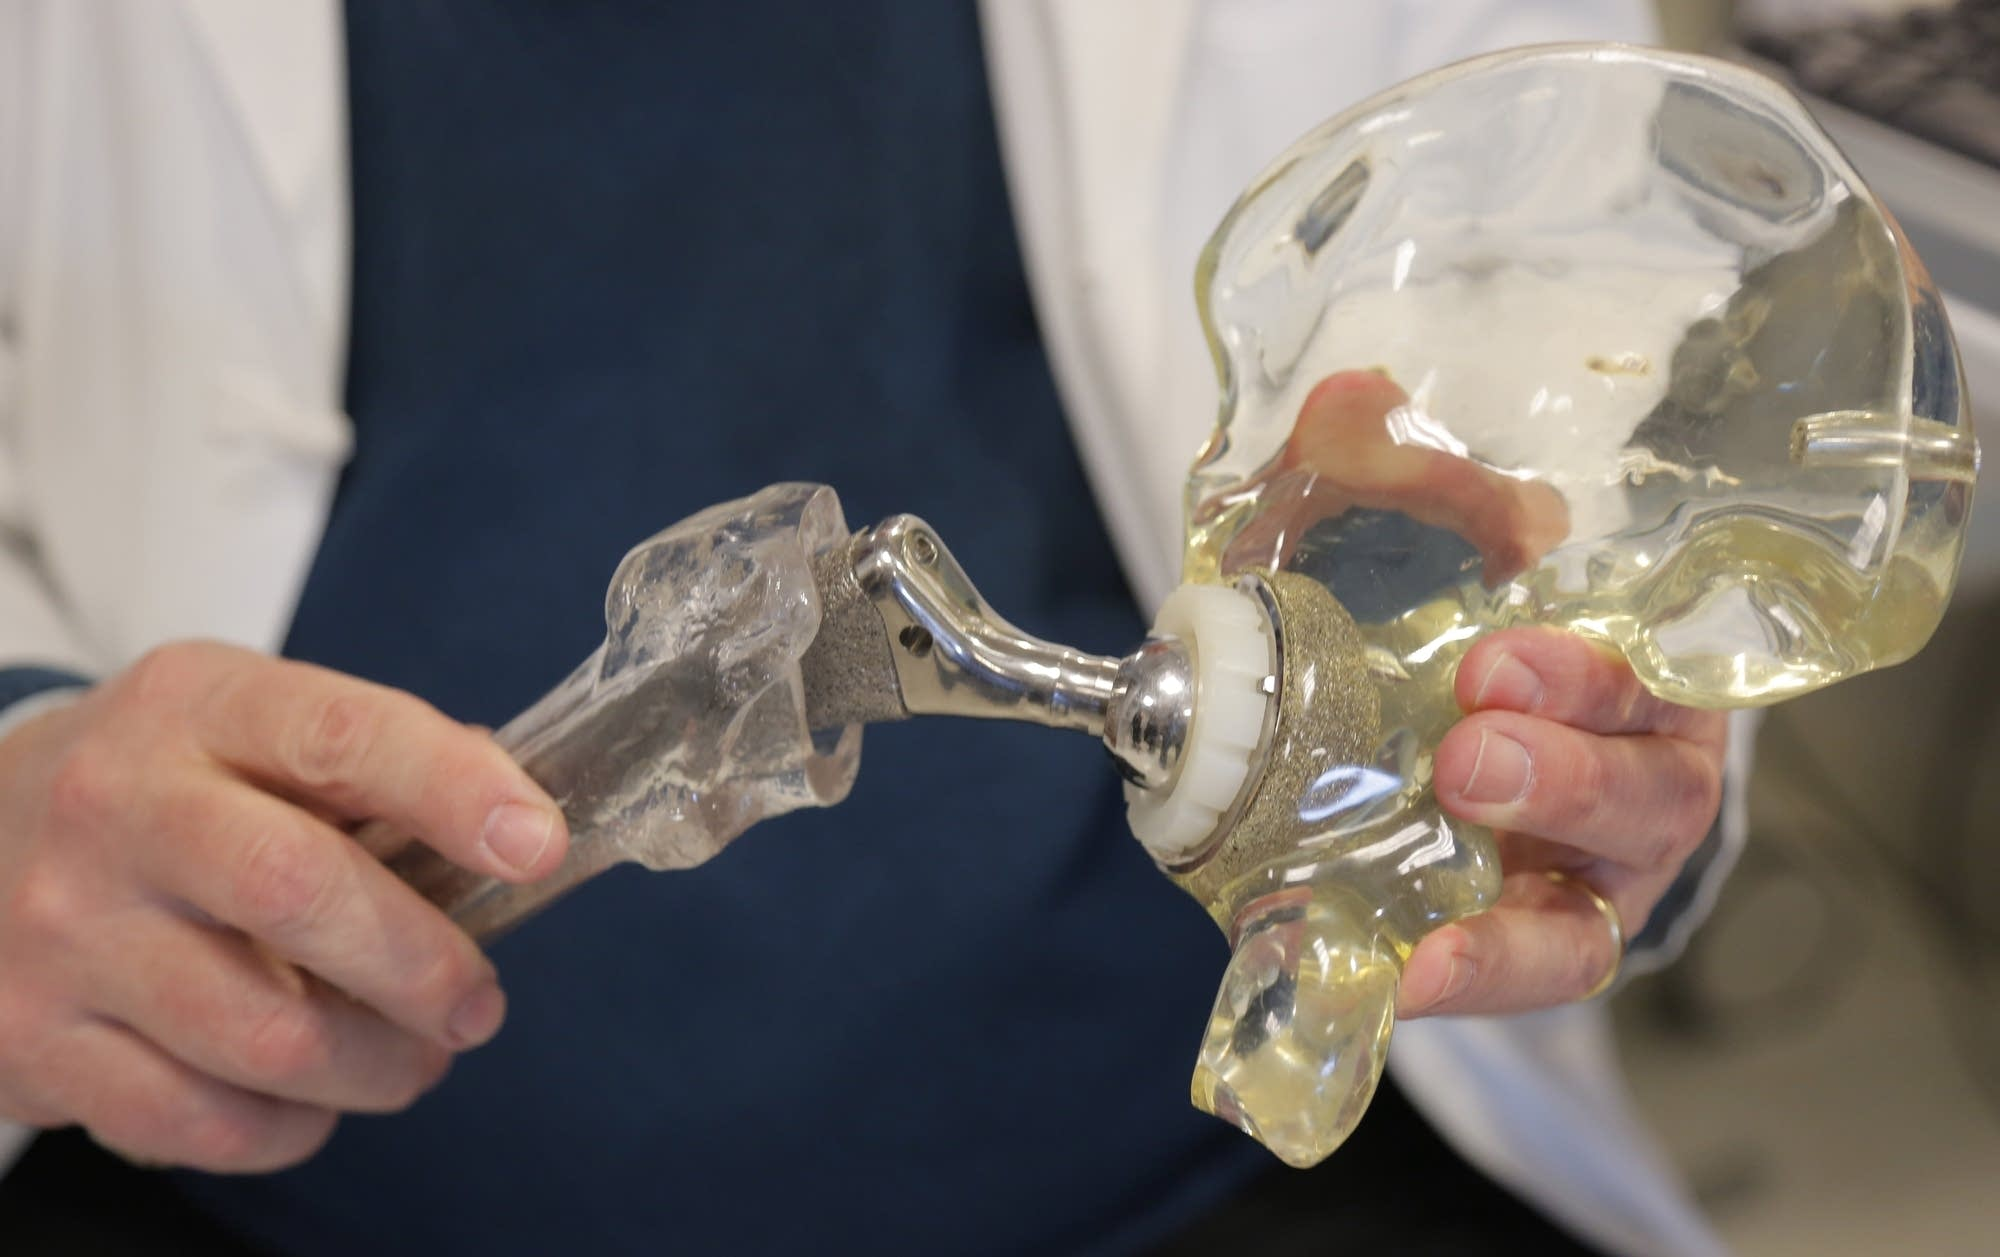 Dr. Joshua Jacobs holds a model of a cementless hip replacement.